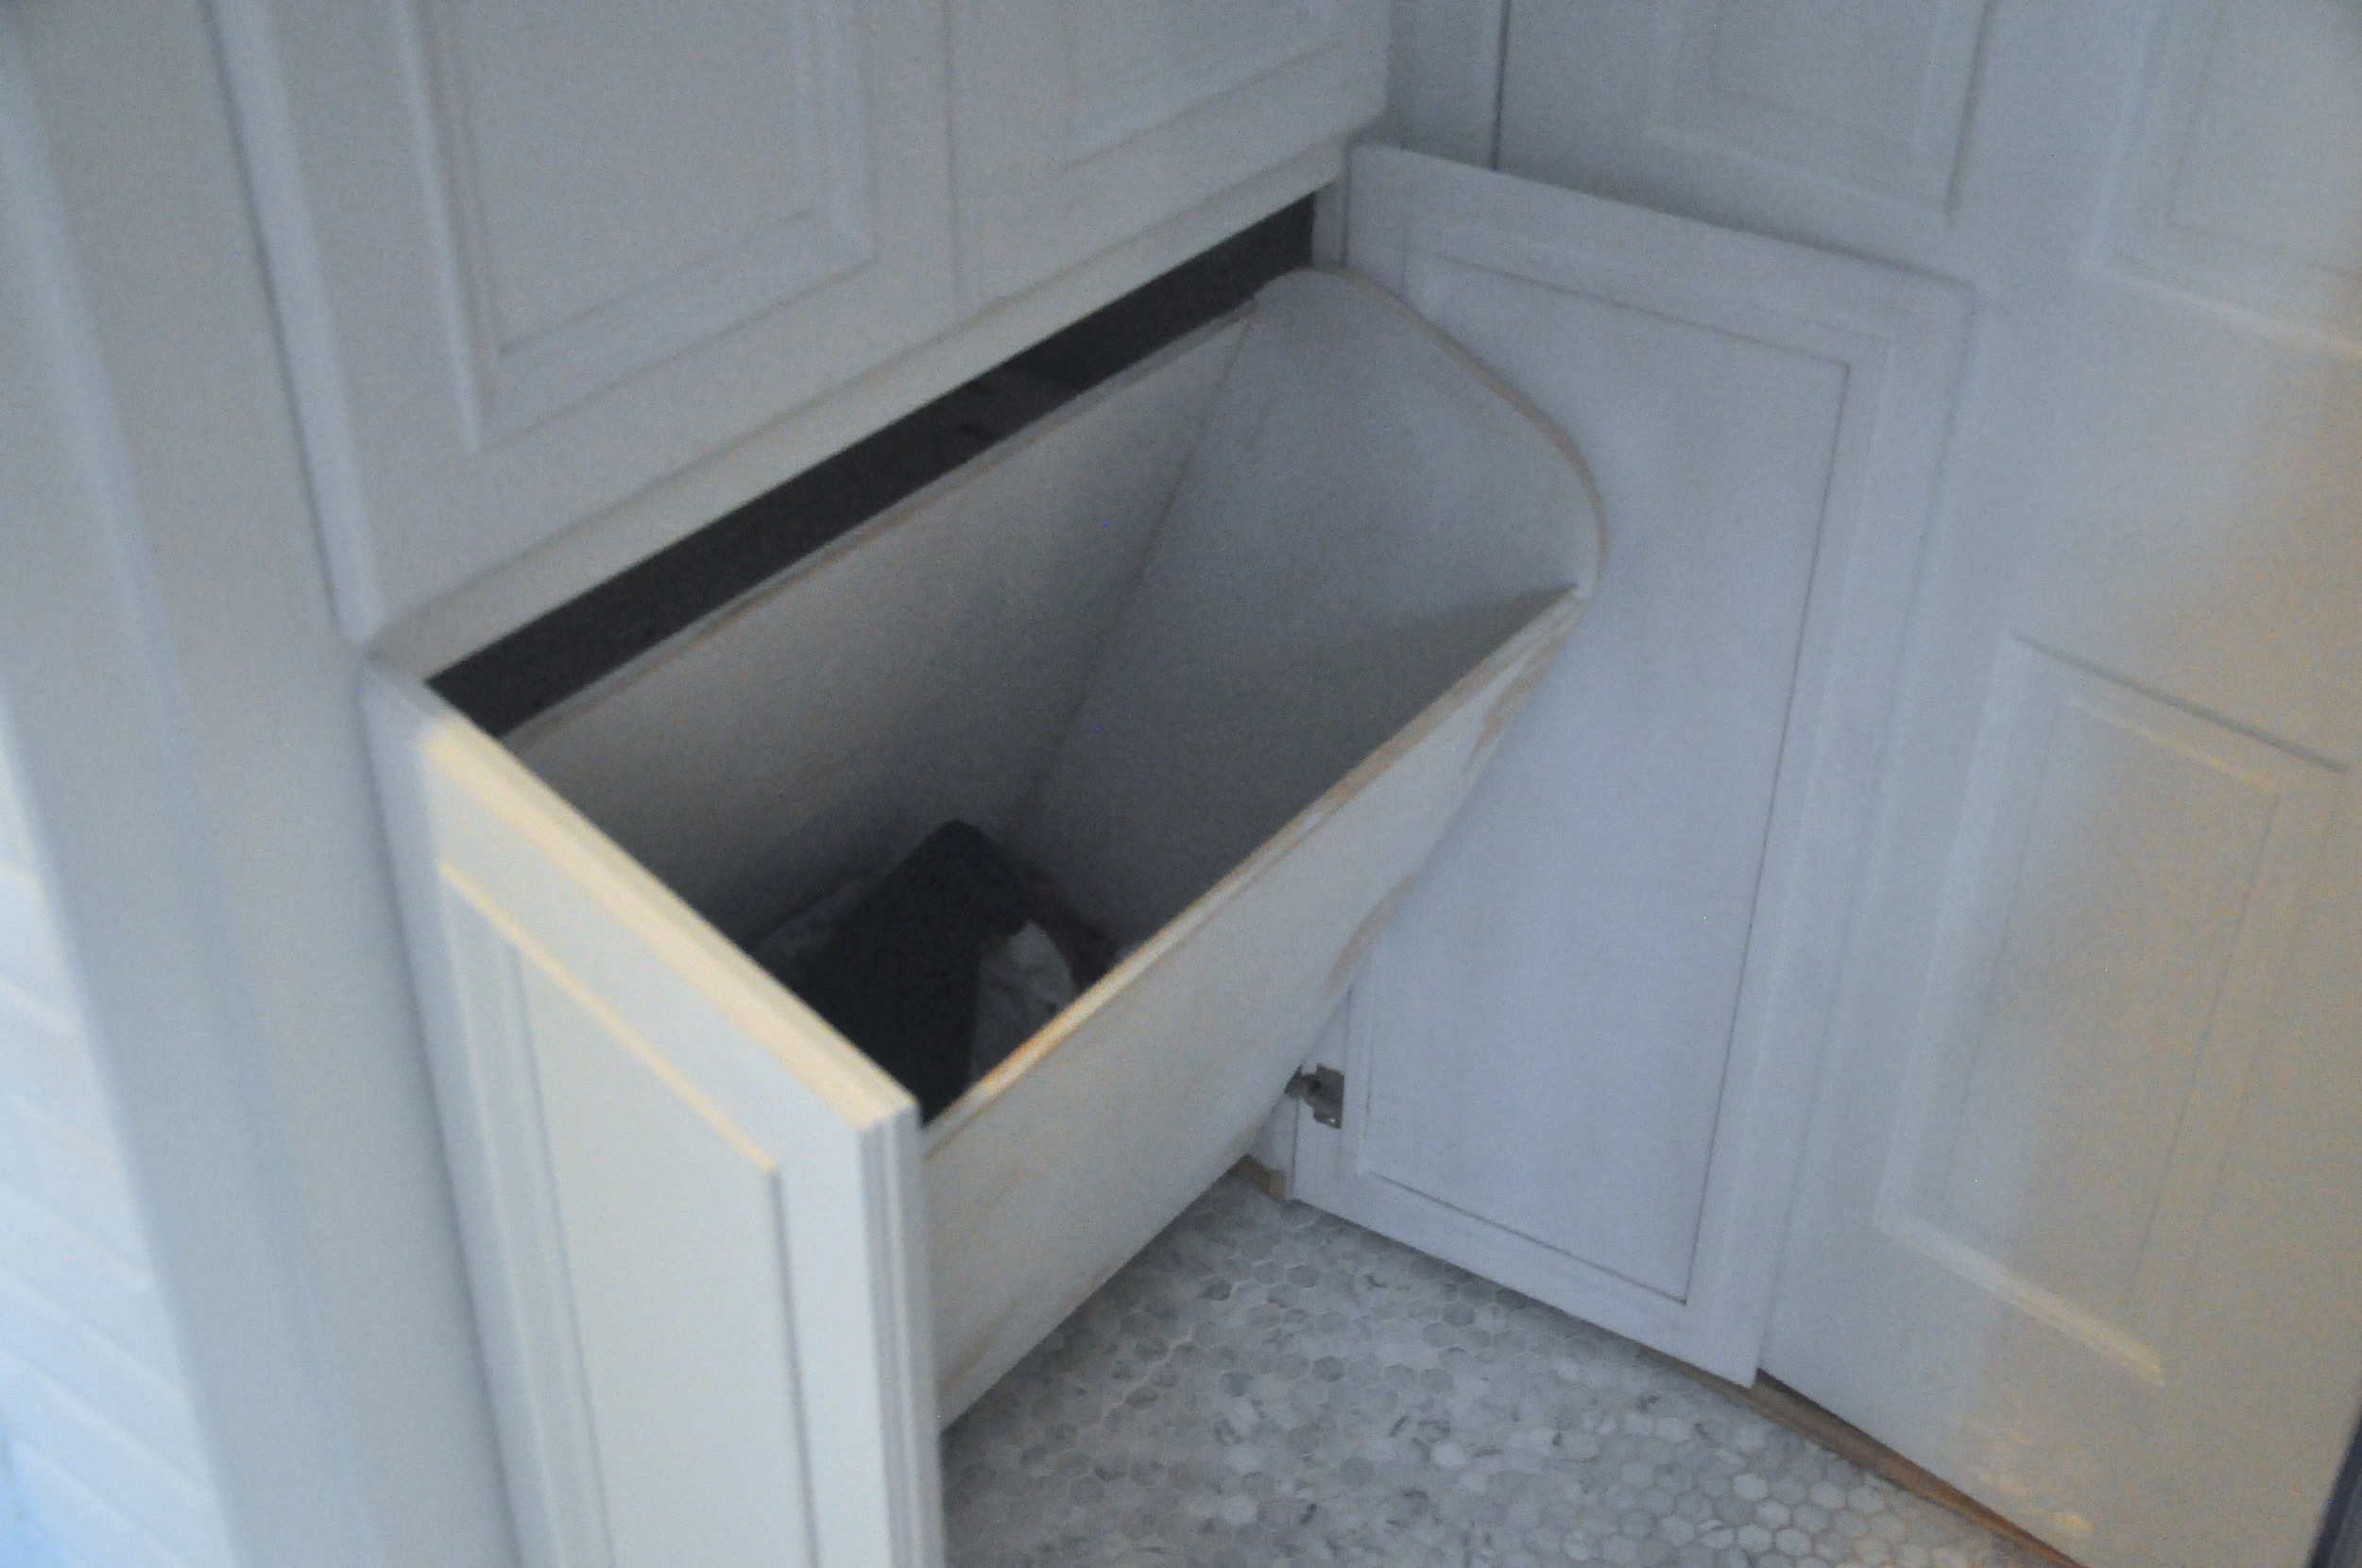 Built-in Laundry bin